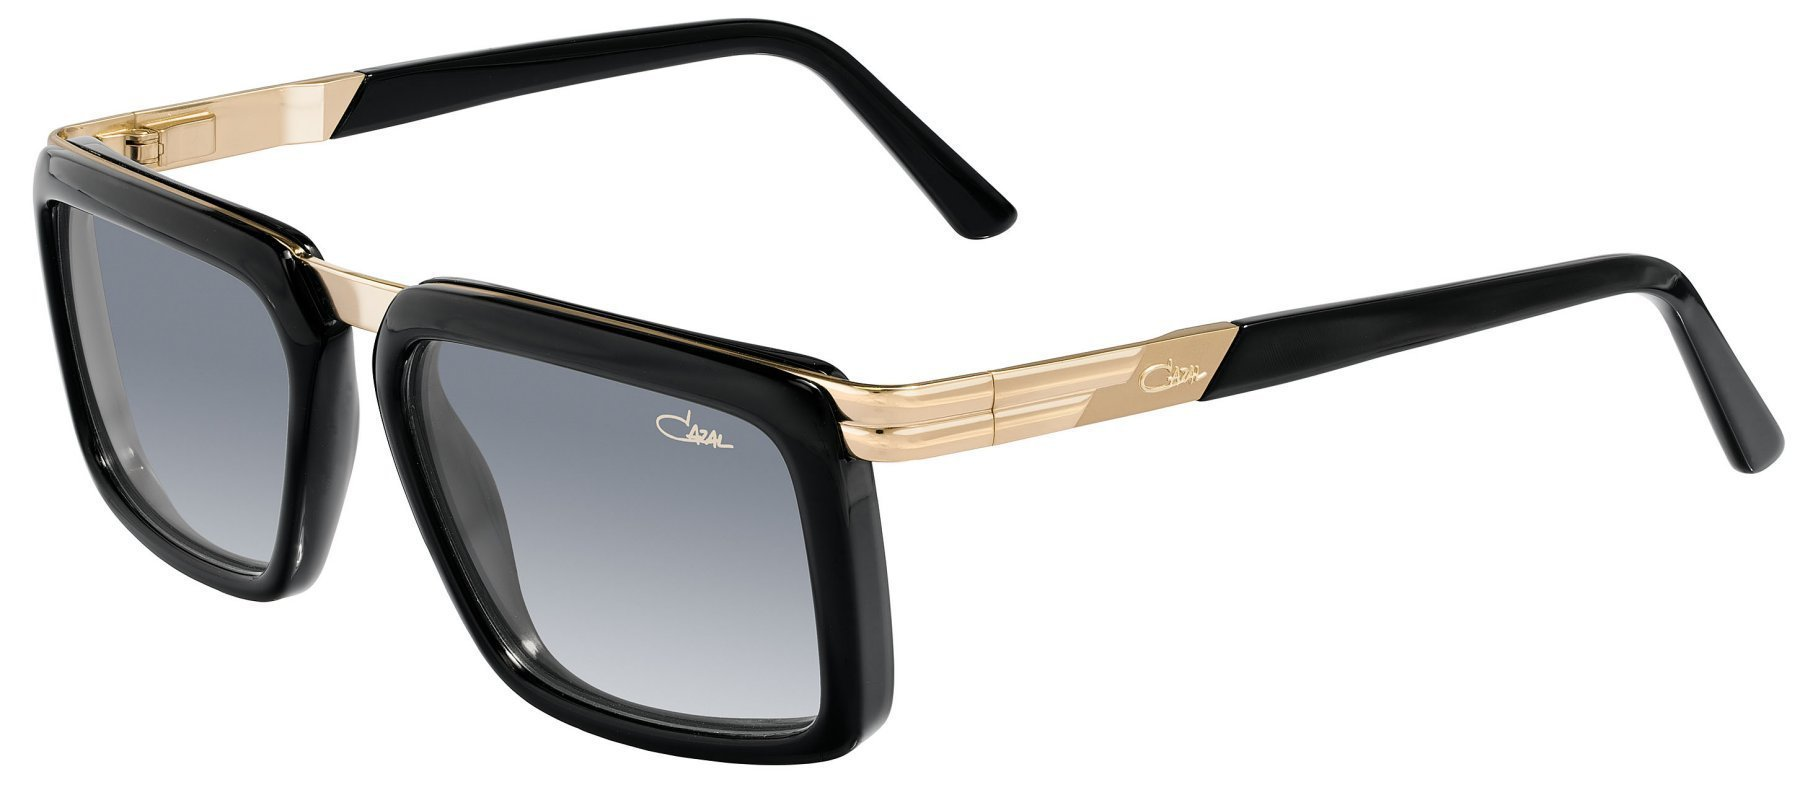 Cazal Rayban Frames Blue Cross Amp Blue Shield Vision